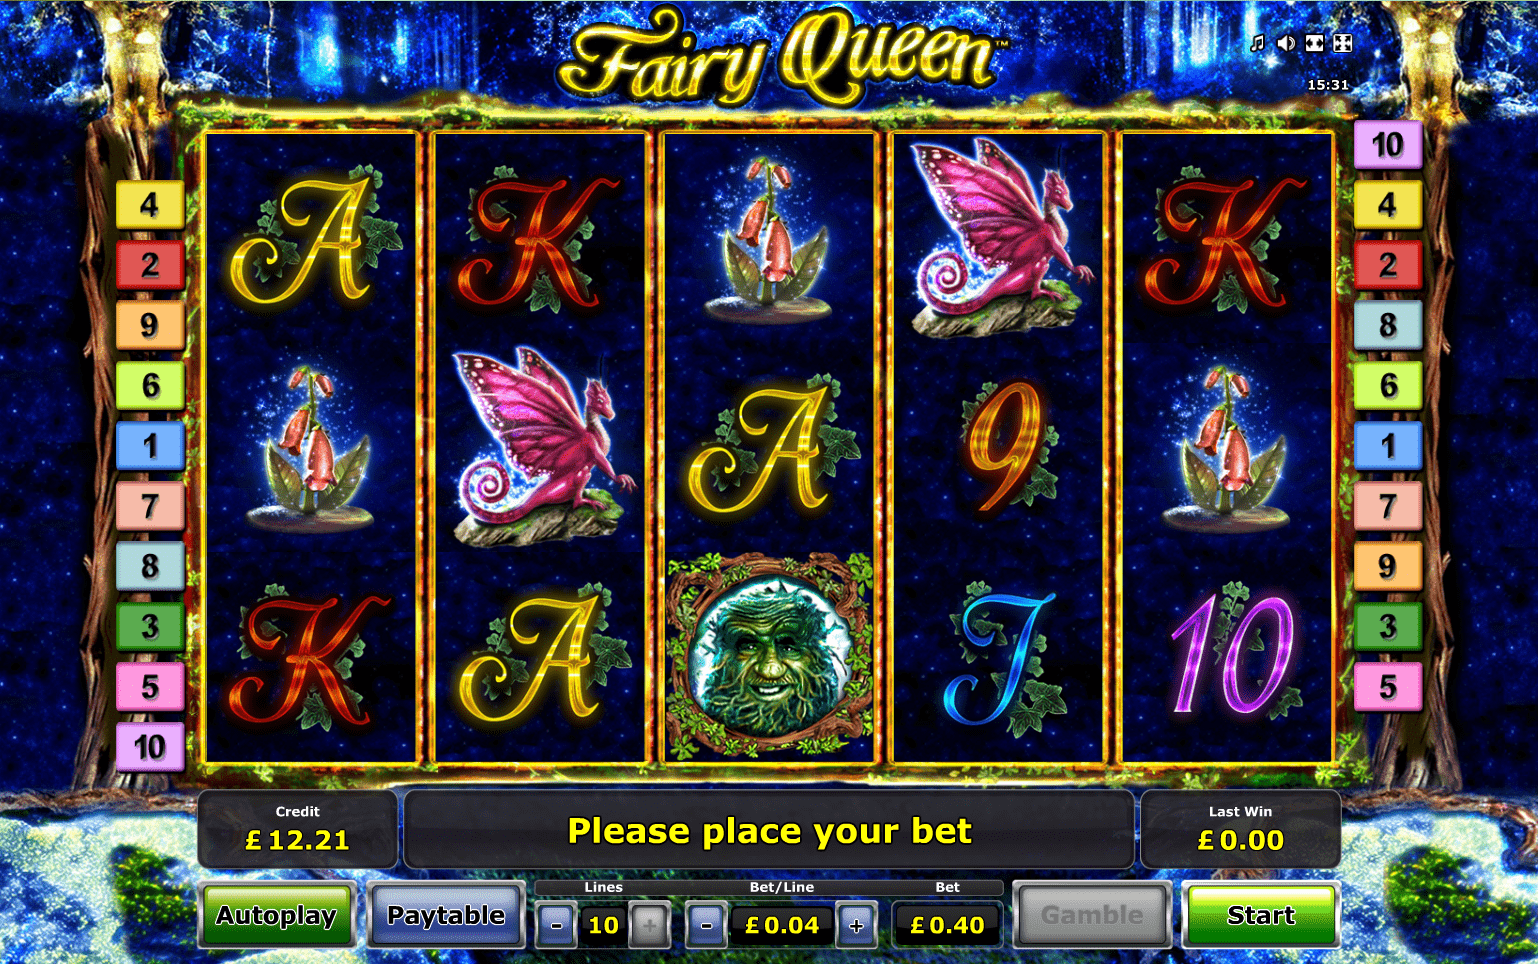 Fairy queen slot machine does the prefer option work on broadway roulette